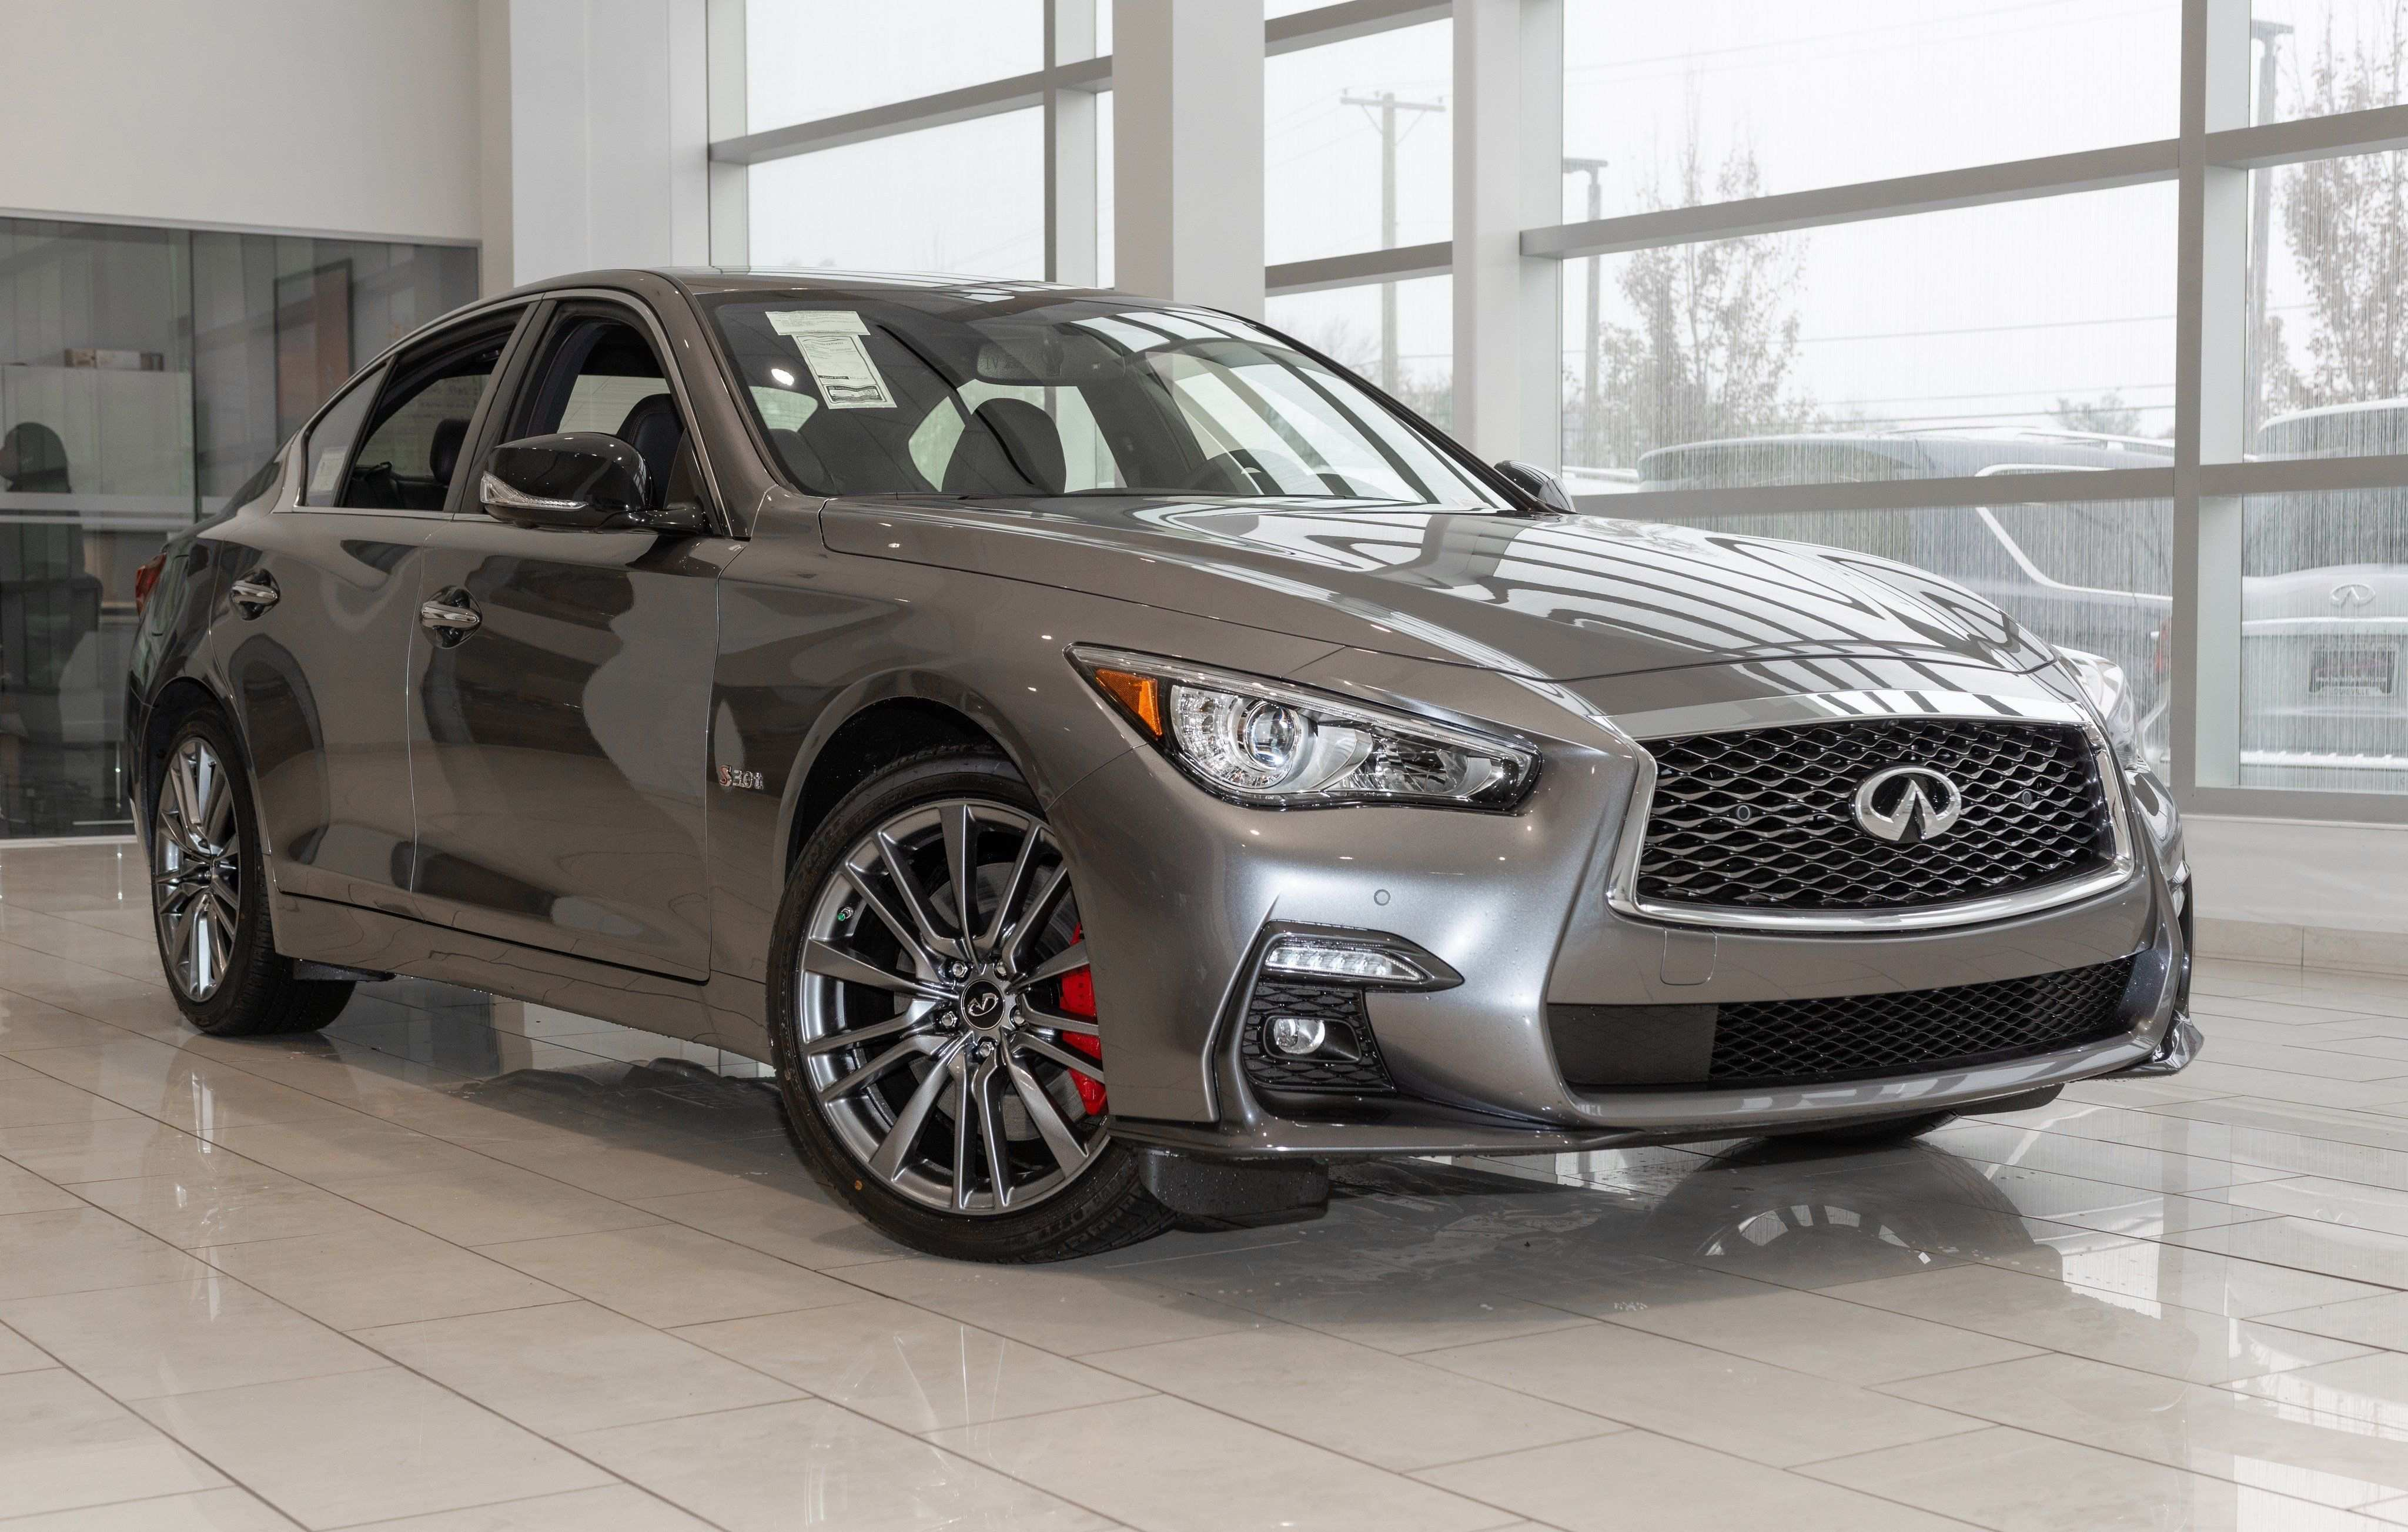 65 Best Review The Infiniti Q50 2019 Images Rumors Pricing by The Infiniti Q50 2019 Images Rumors